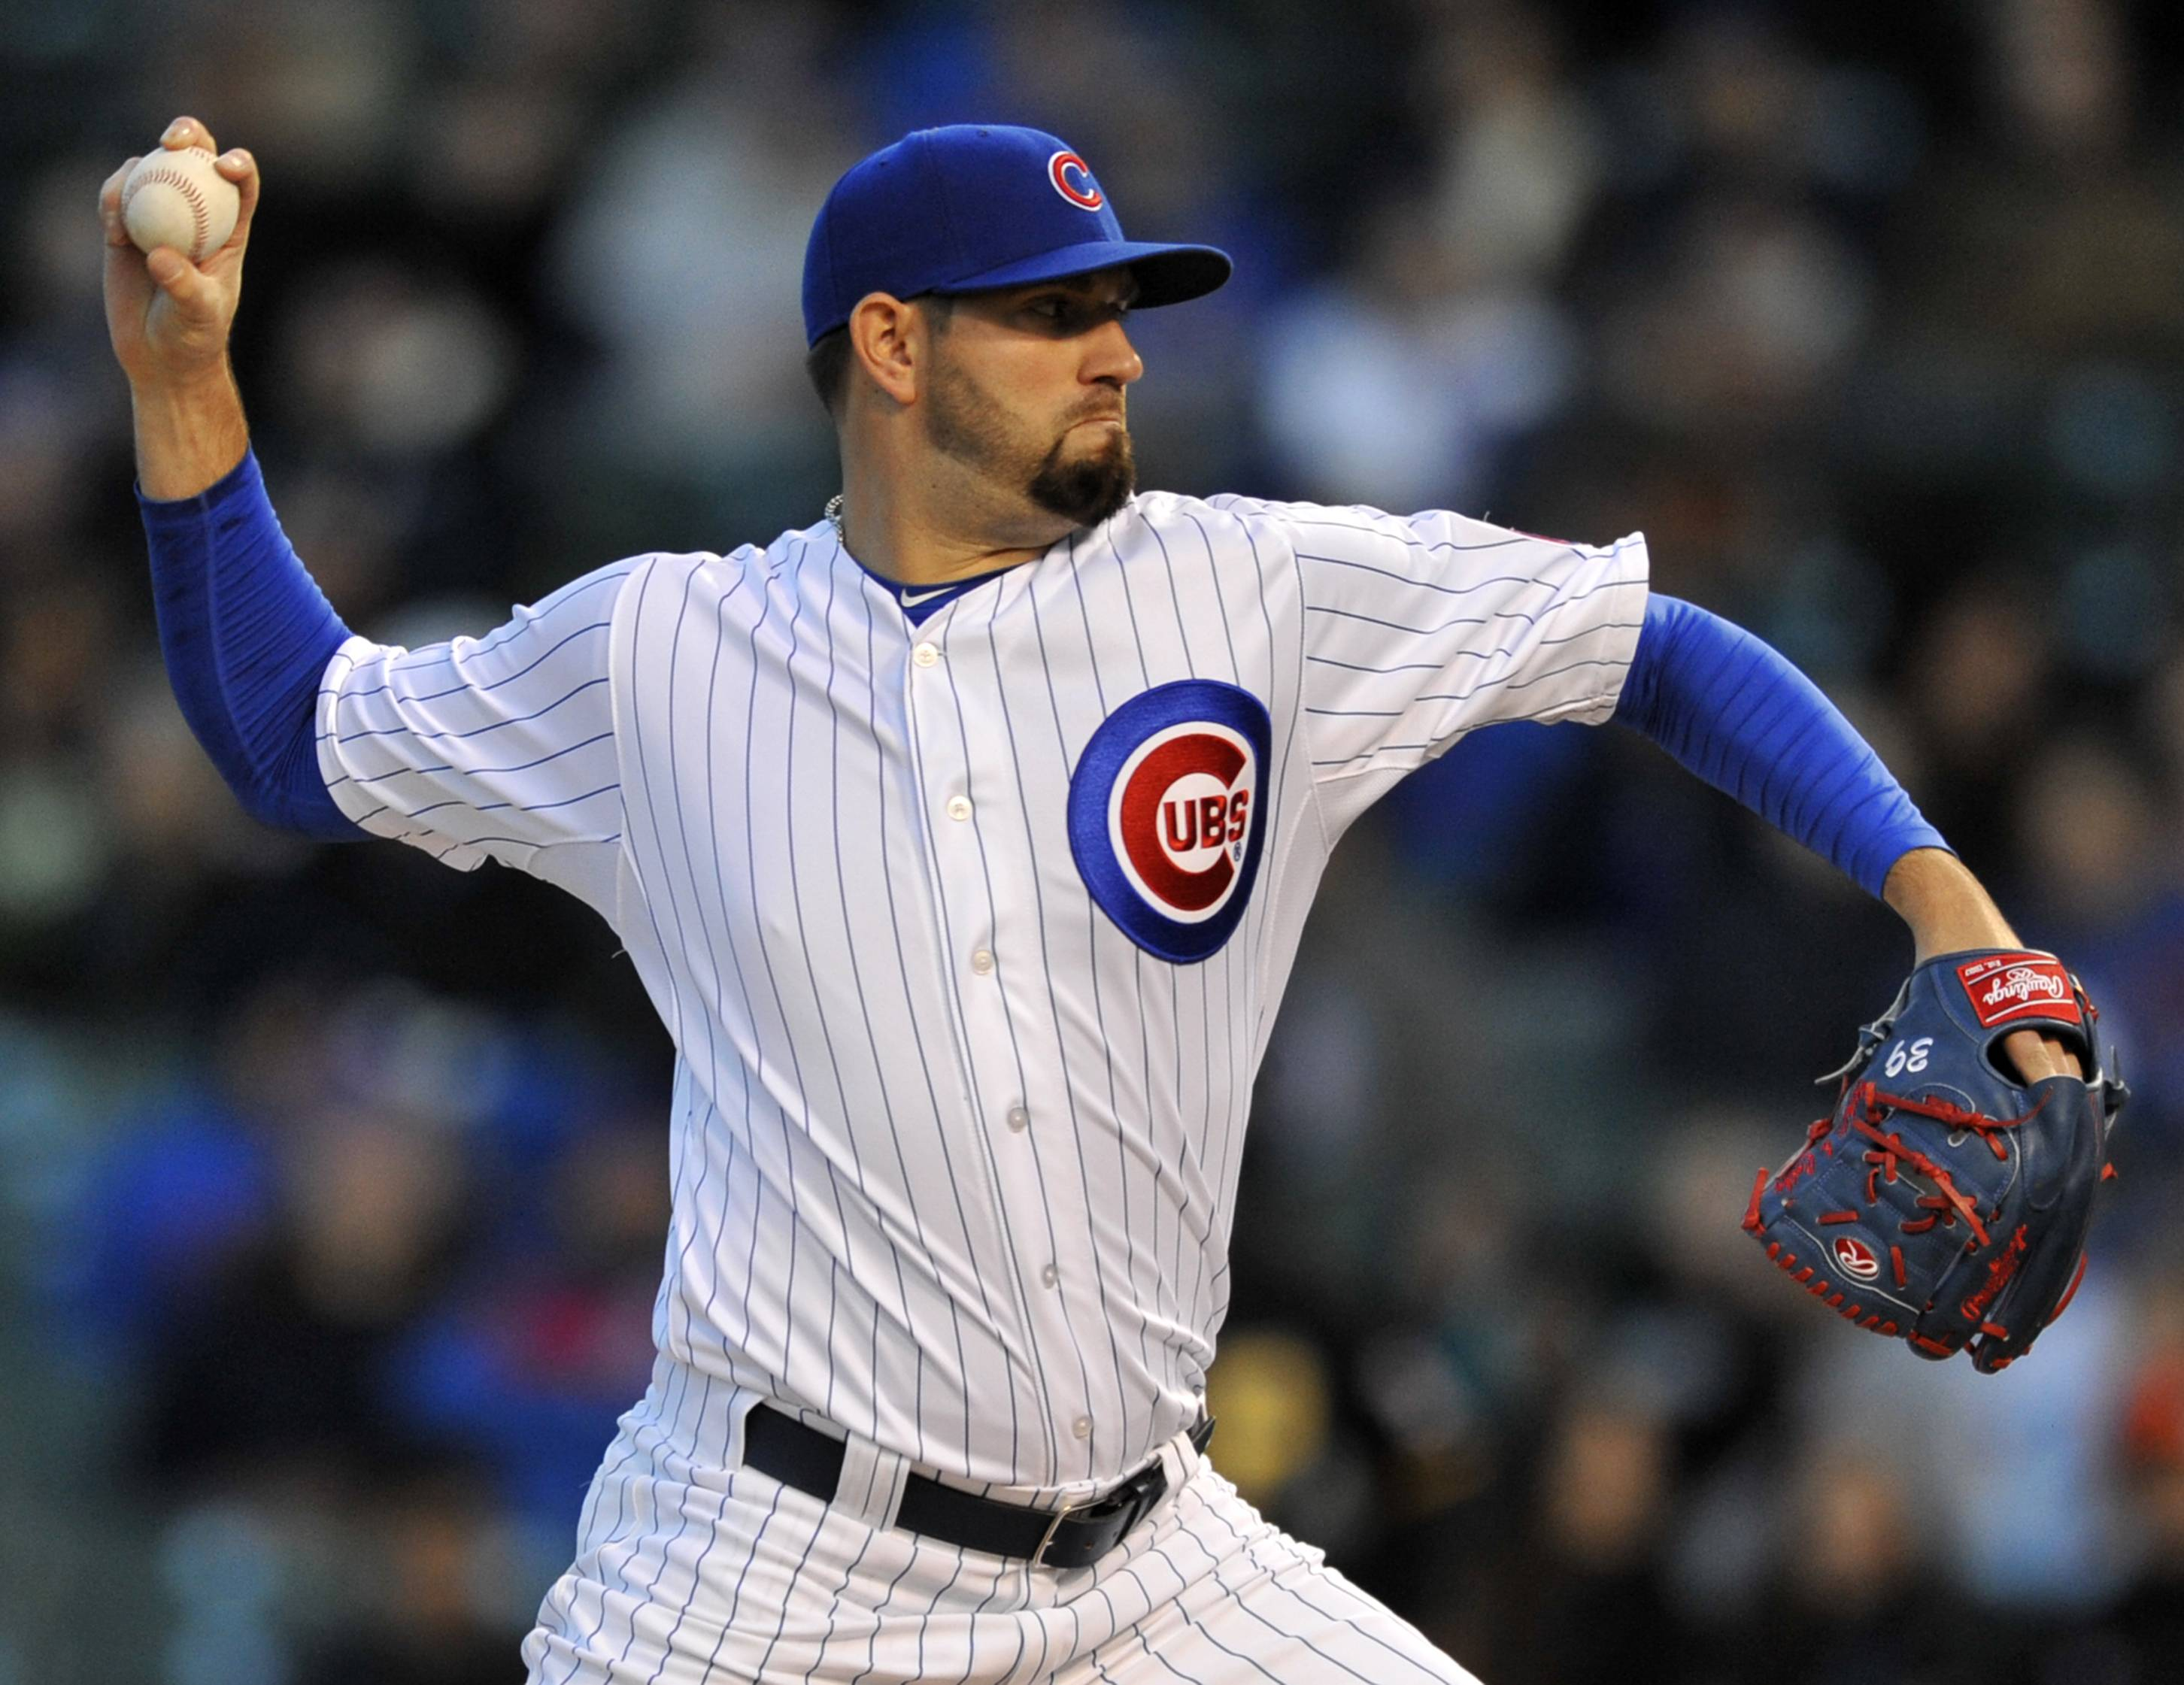 Cubs starter Jason Hammel worked 8 shutout innings Monday against the Pirates, allowing 4 hits with 7 strikeouts and no walks at Wrigley Field.